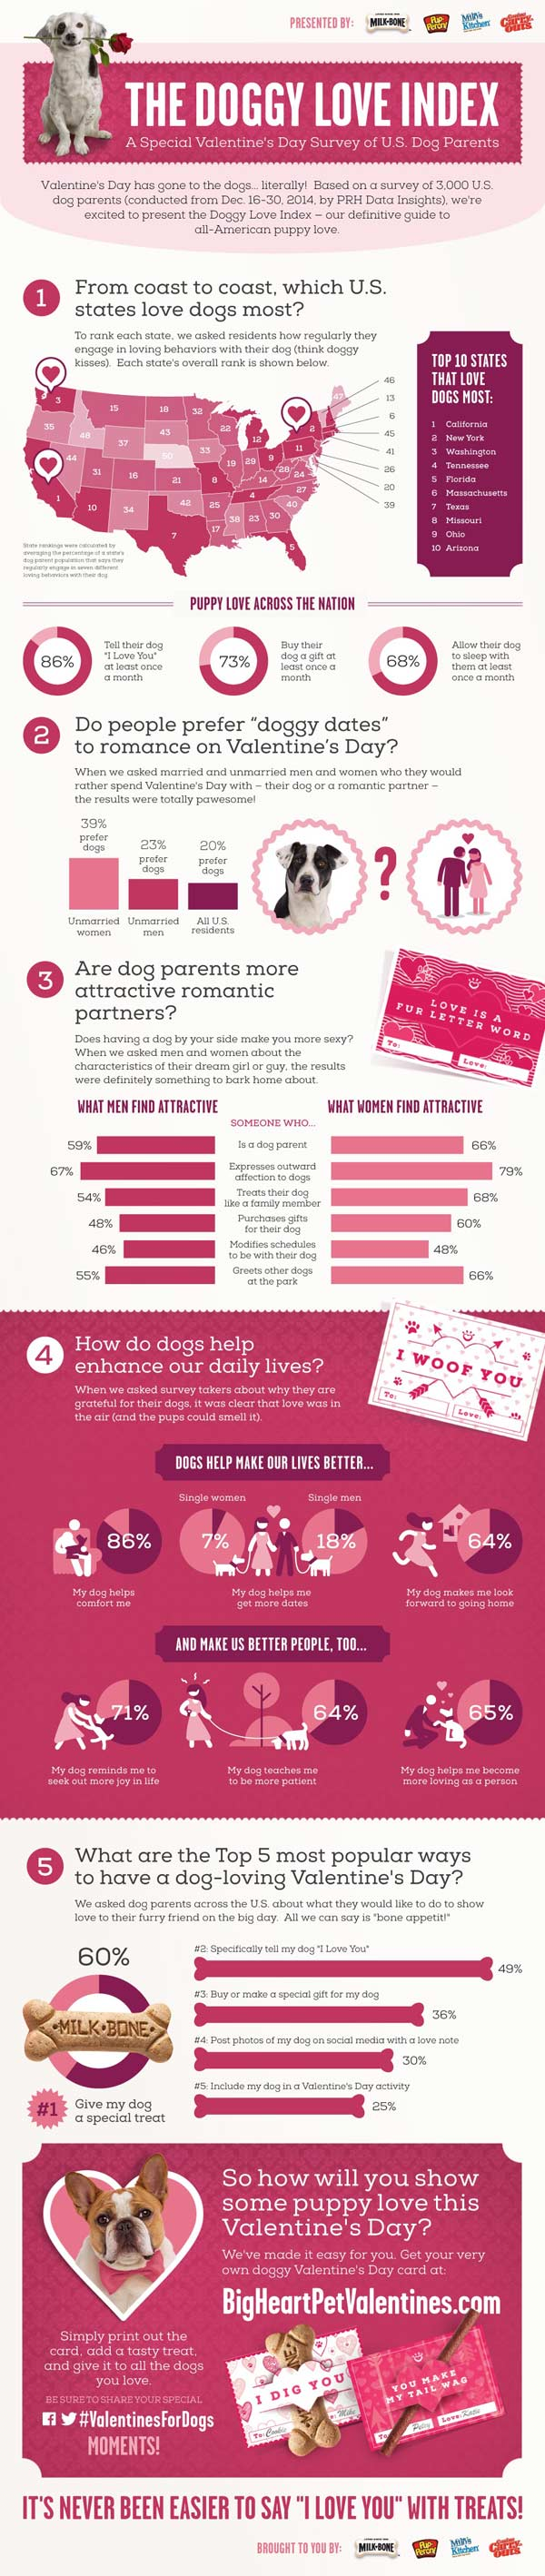 Doggy Love Infographic